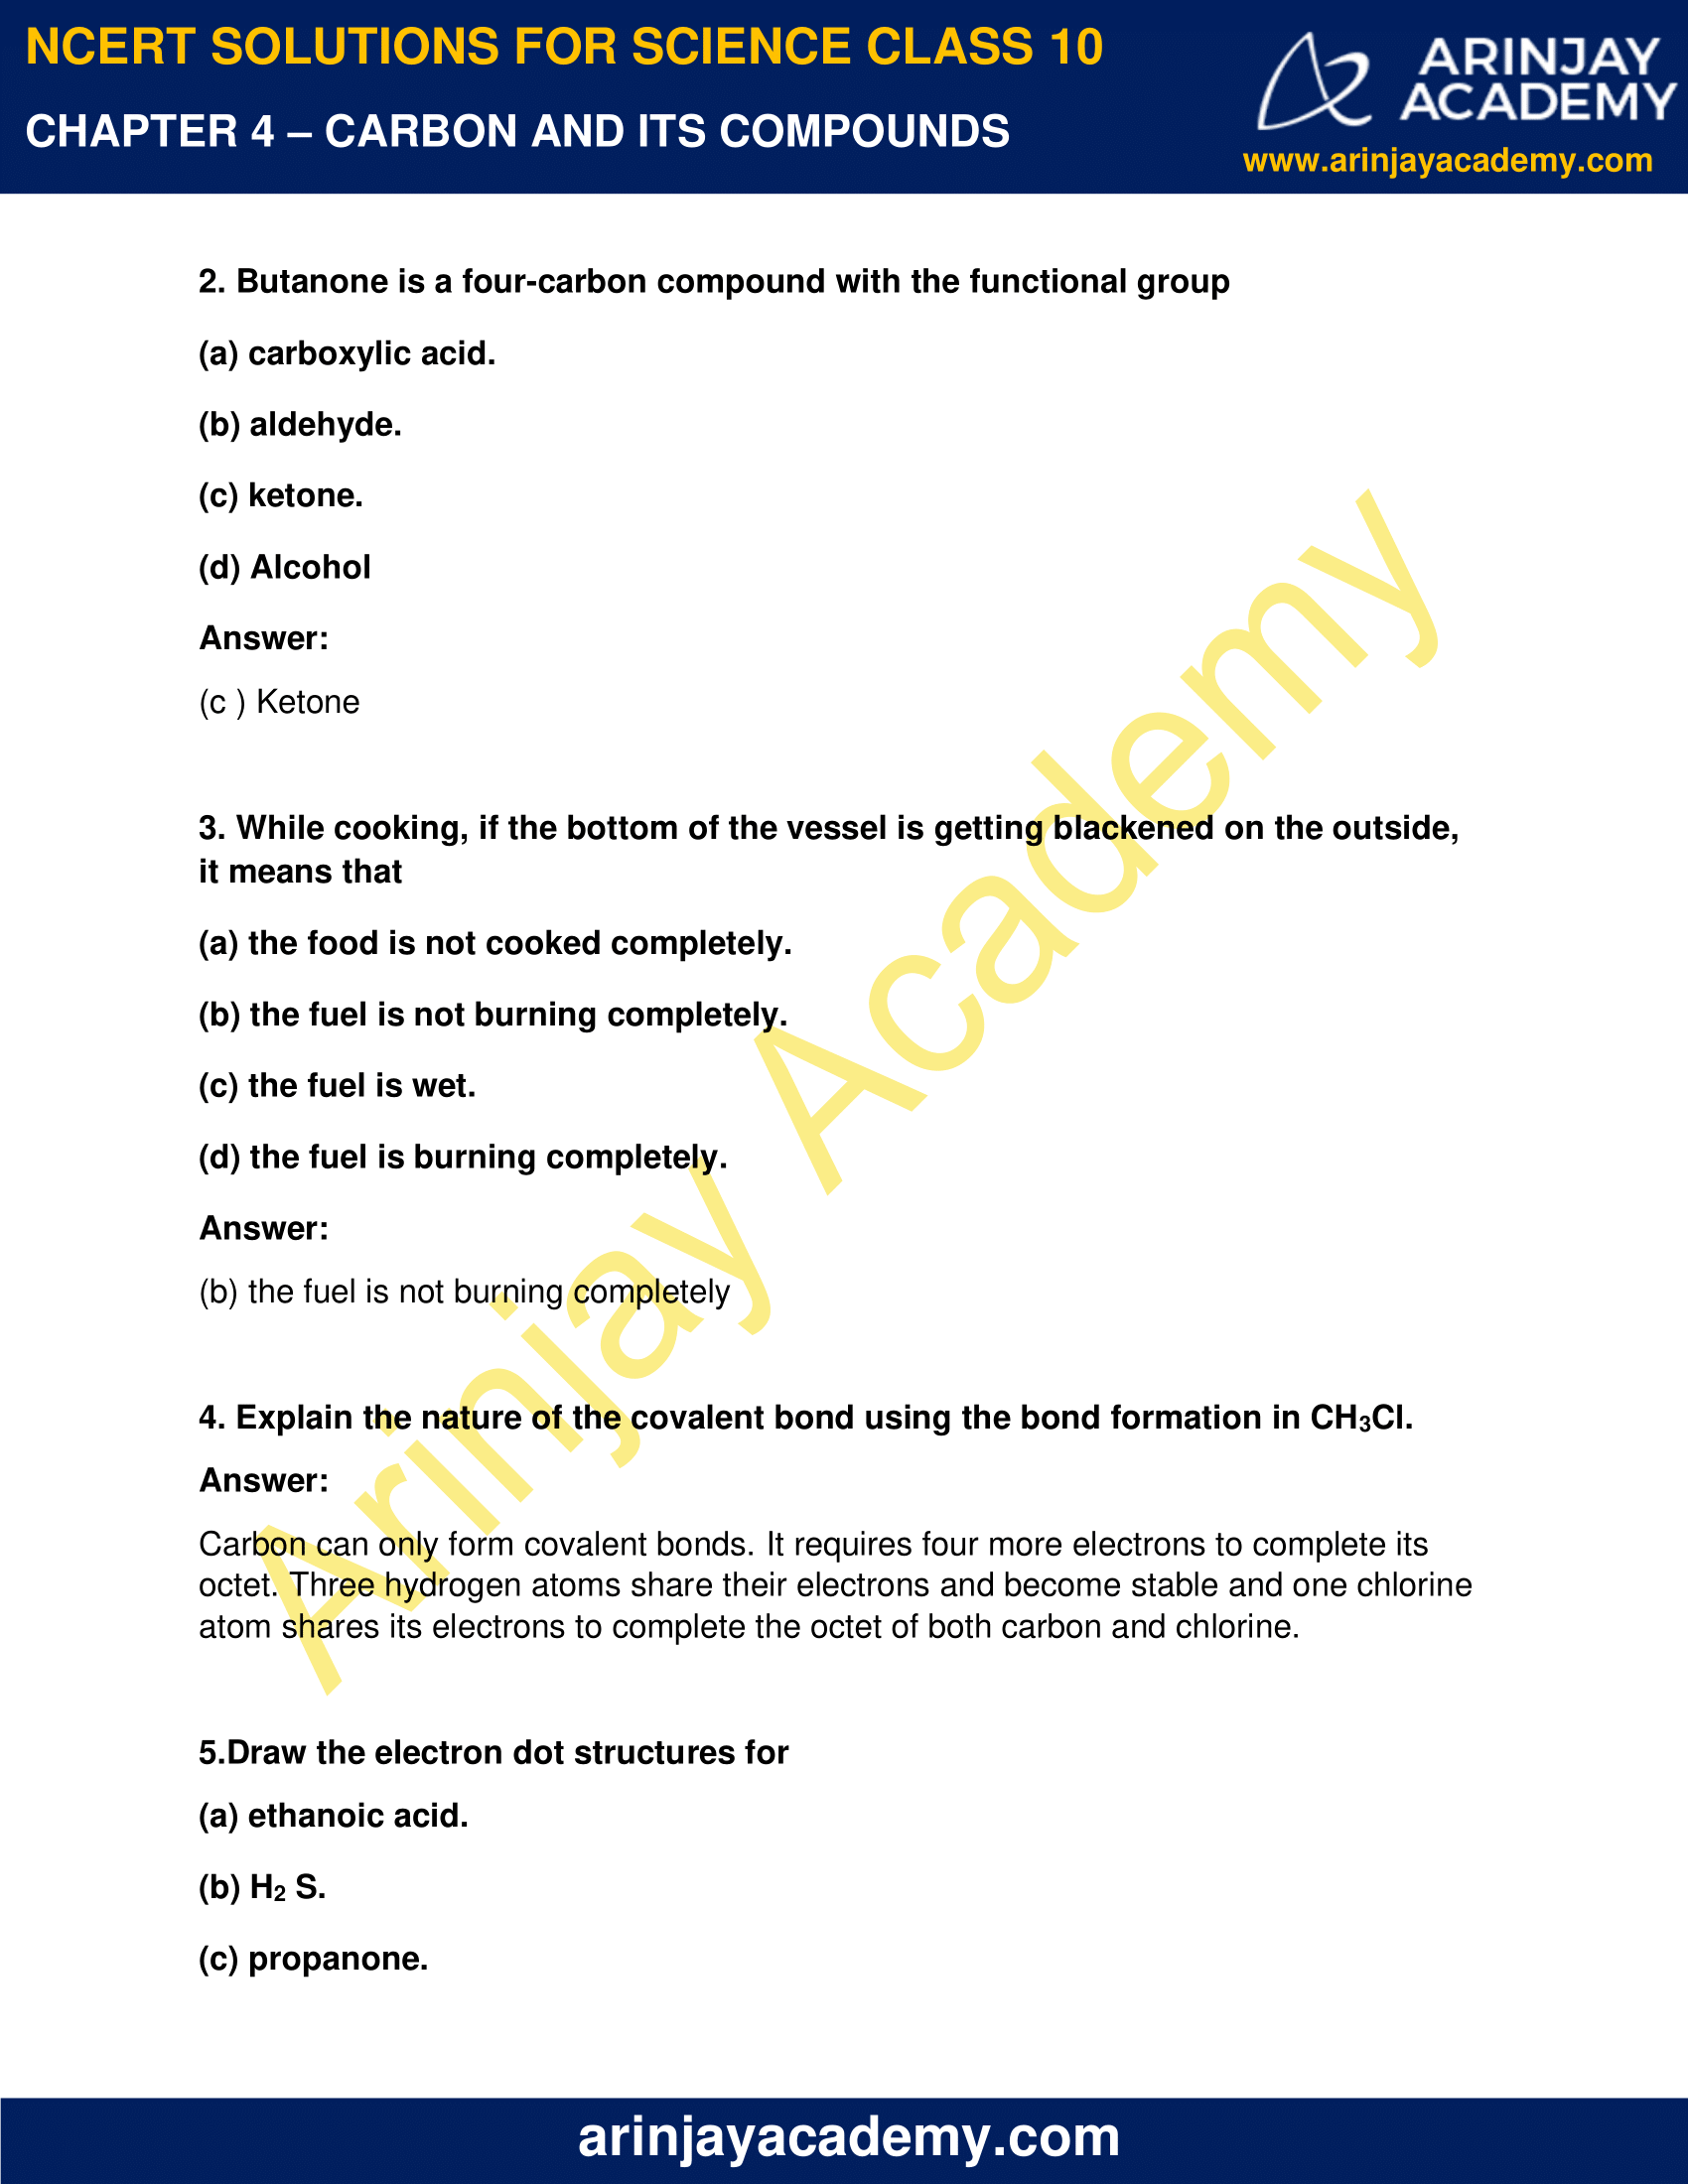 NCERT Solutions for Class 10 Science Chapter 4 image 7